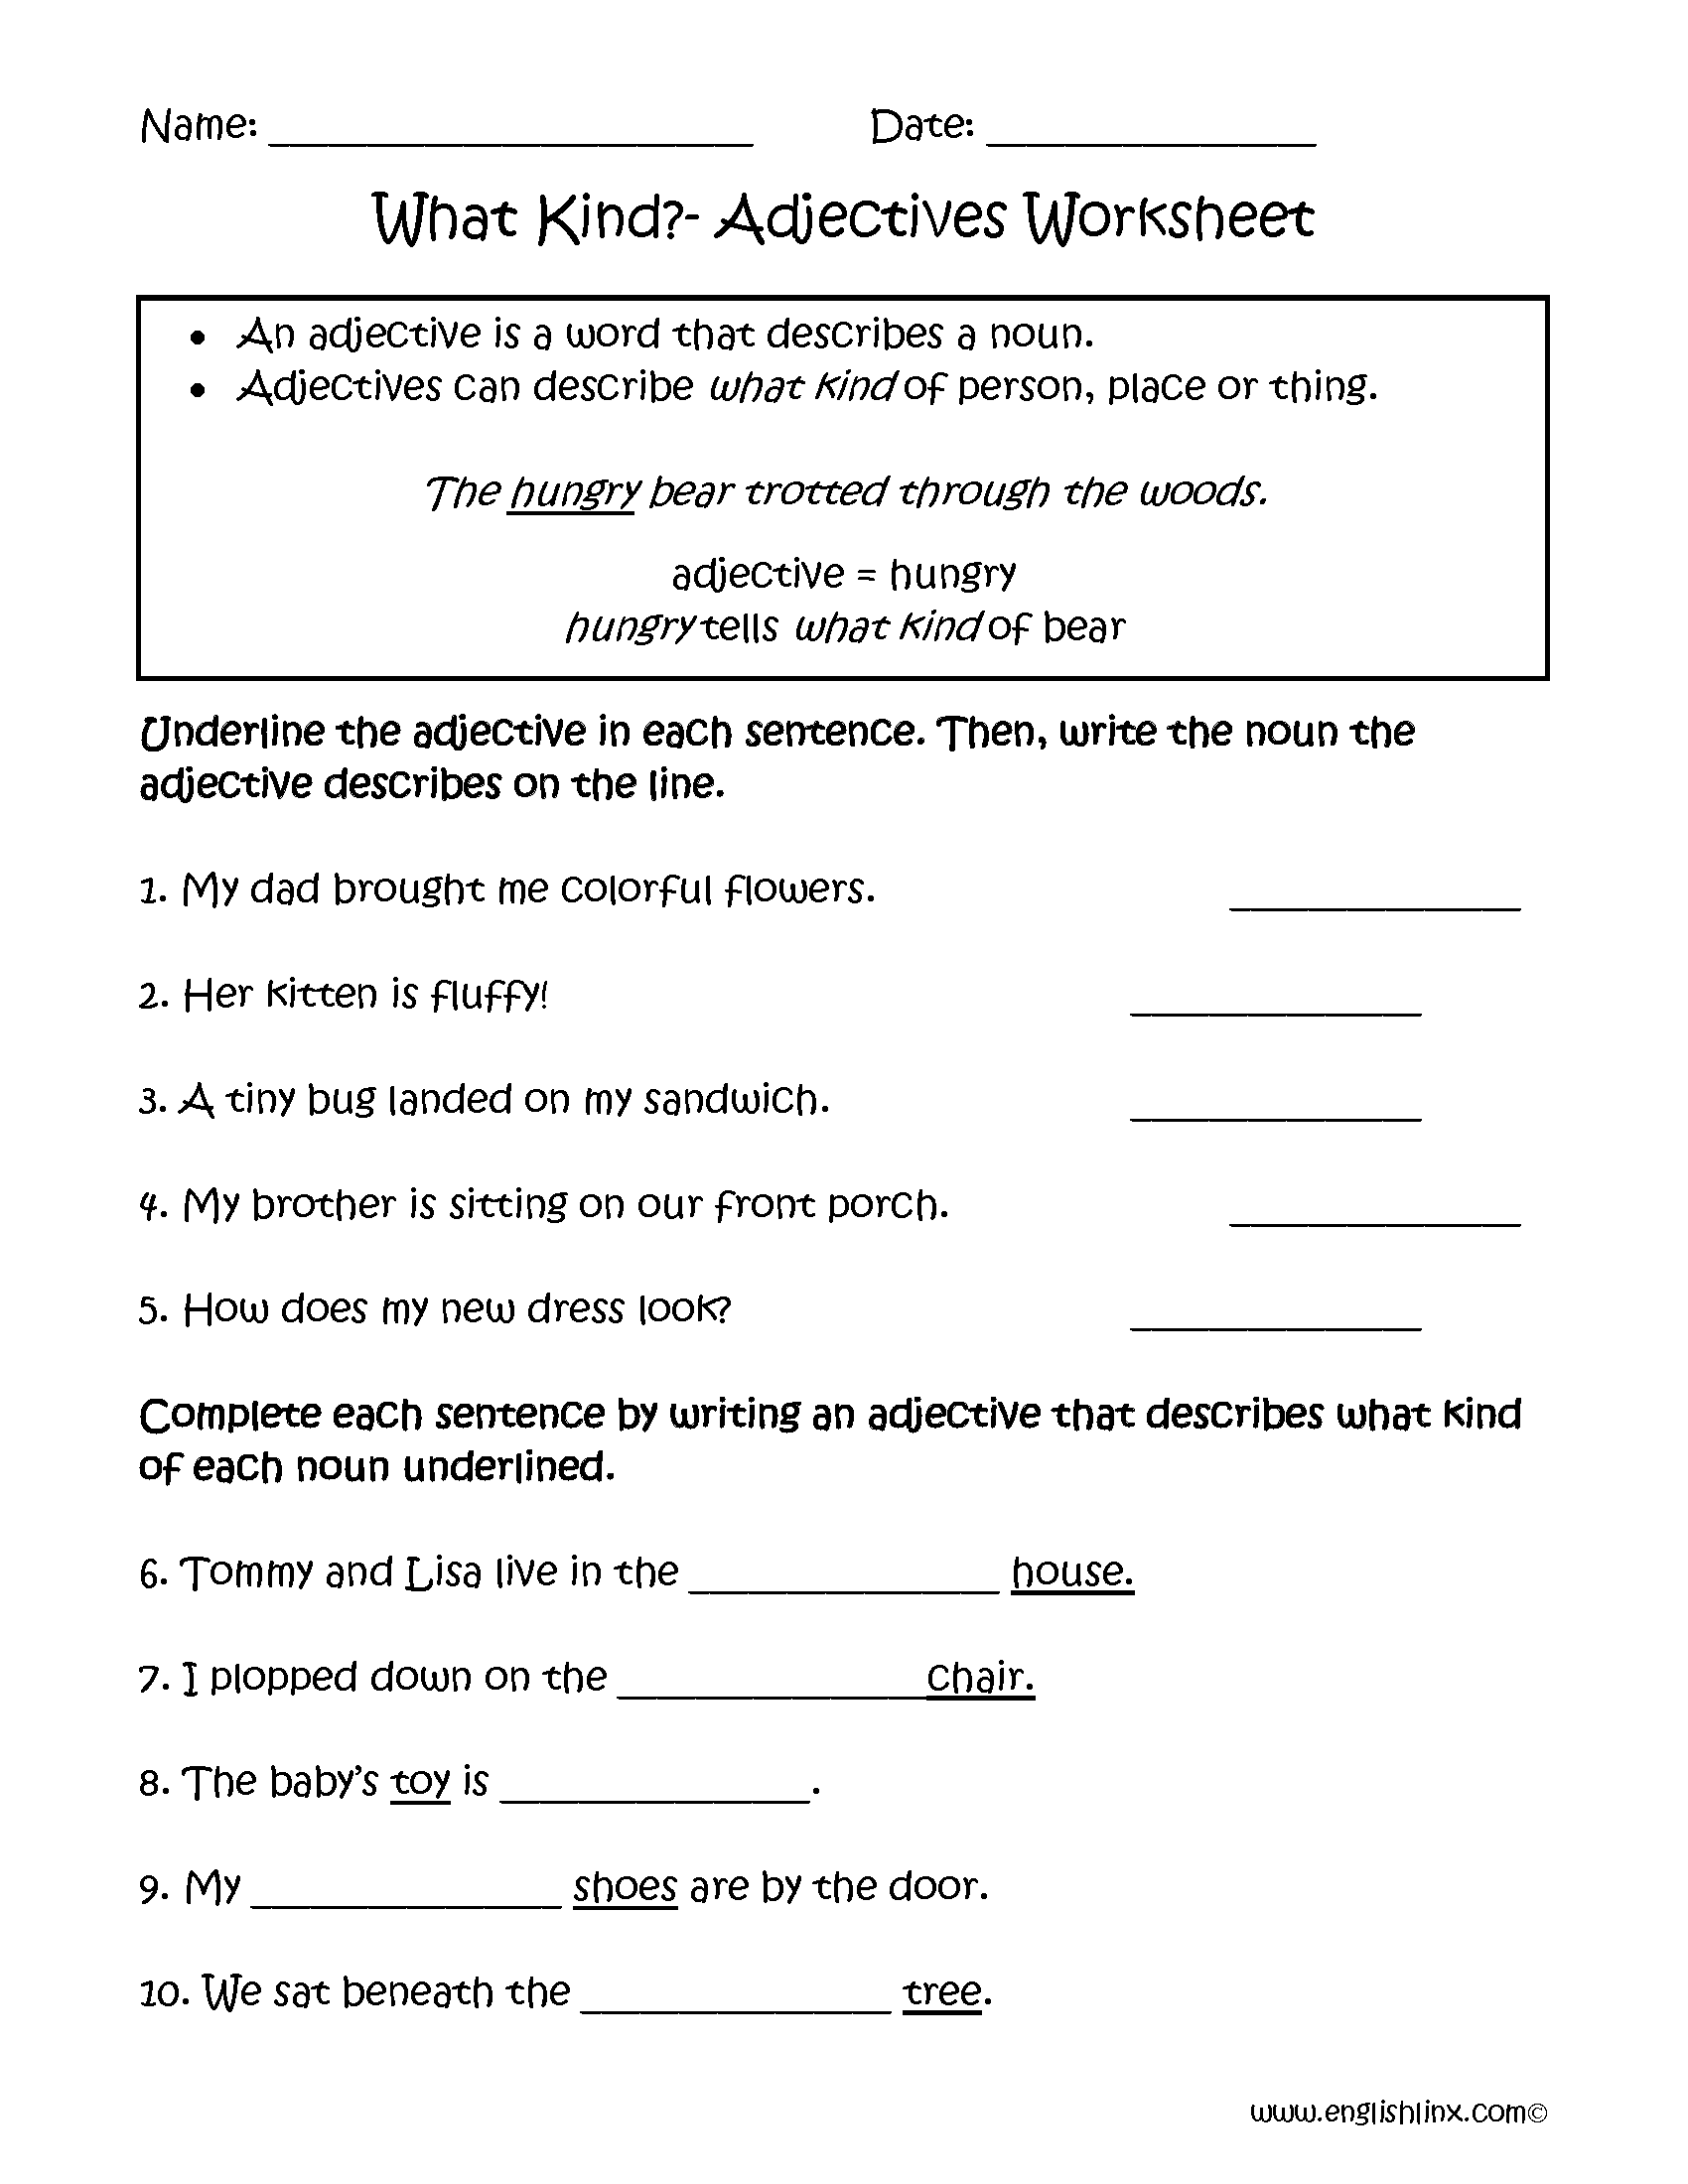 Worksheet Using Adjectives Worksheets adjectives worksheets regular worksheets